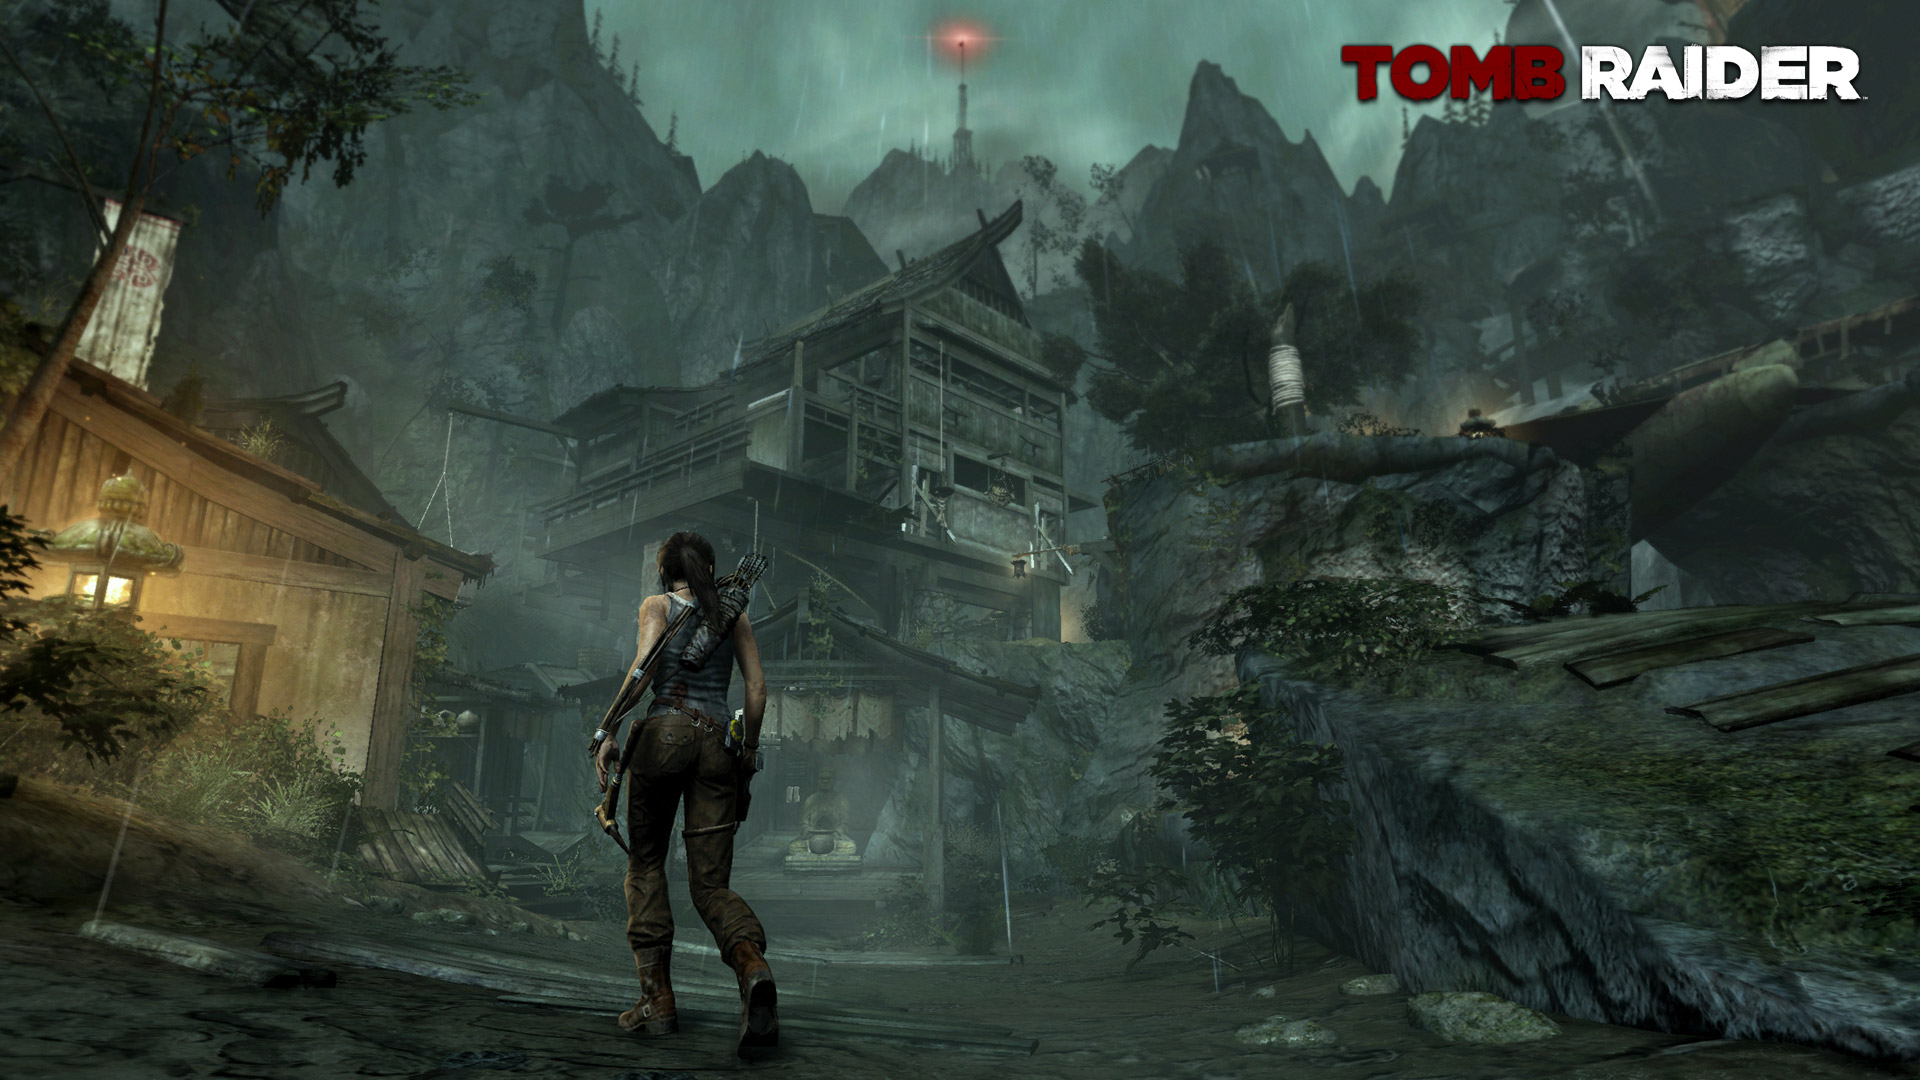 Free Tomb Raider Wallpaper in 1920x1080